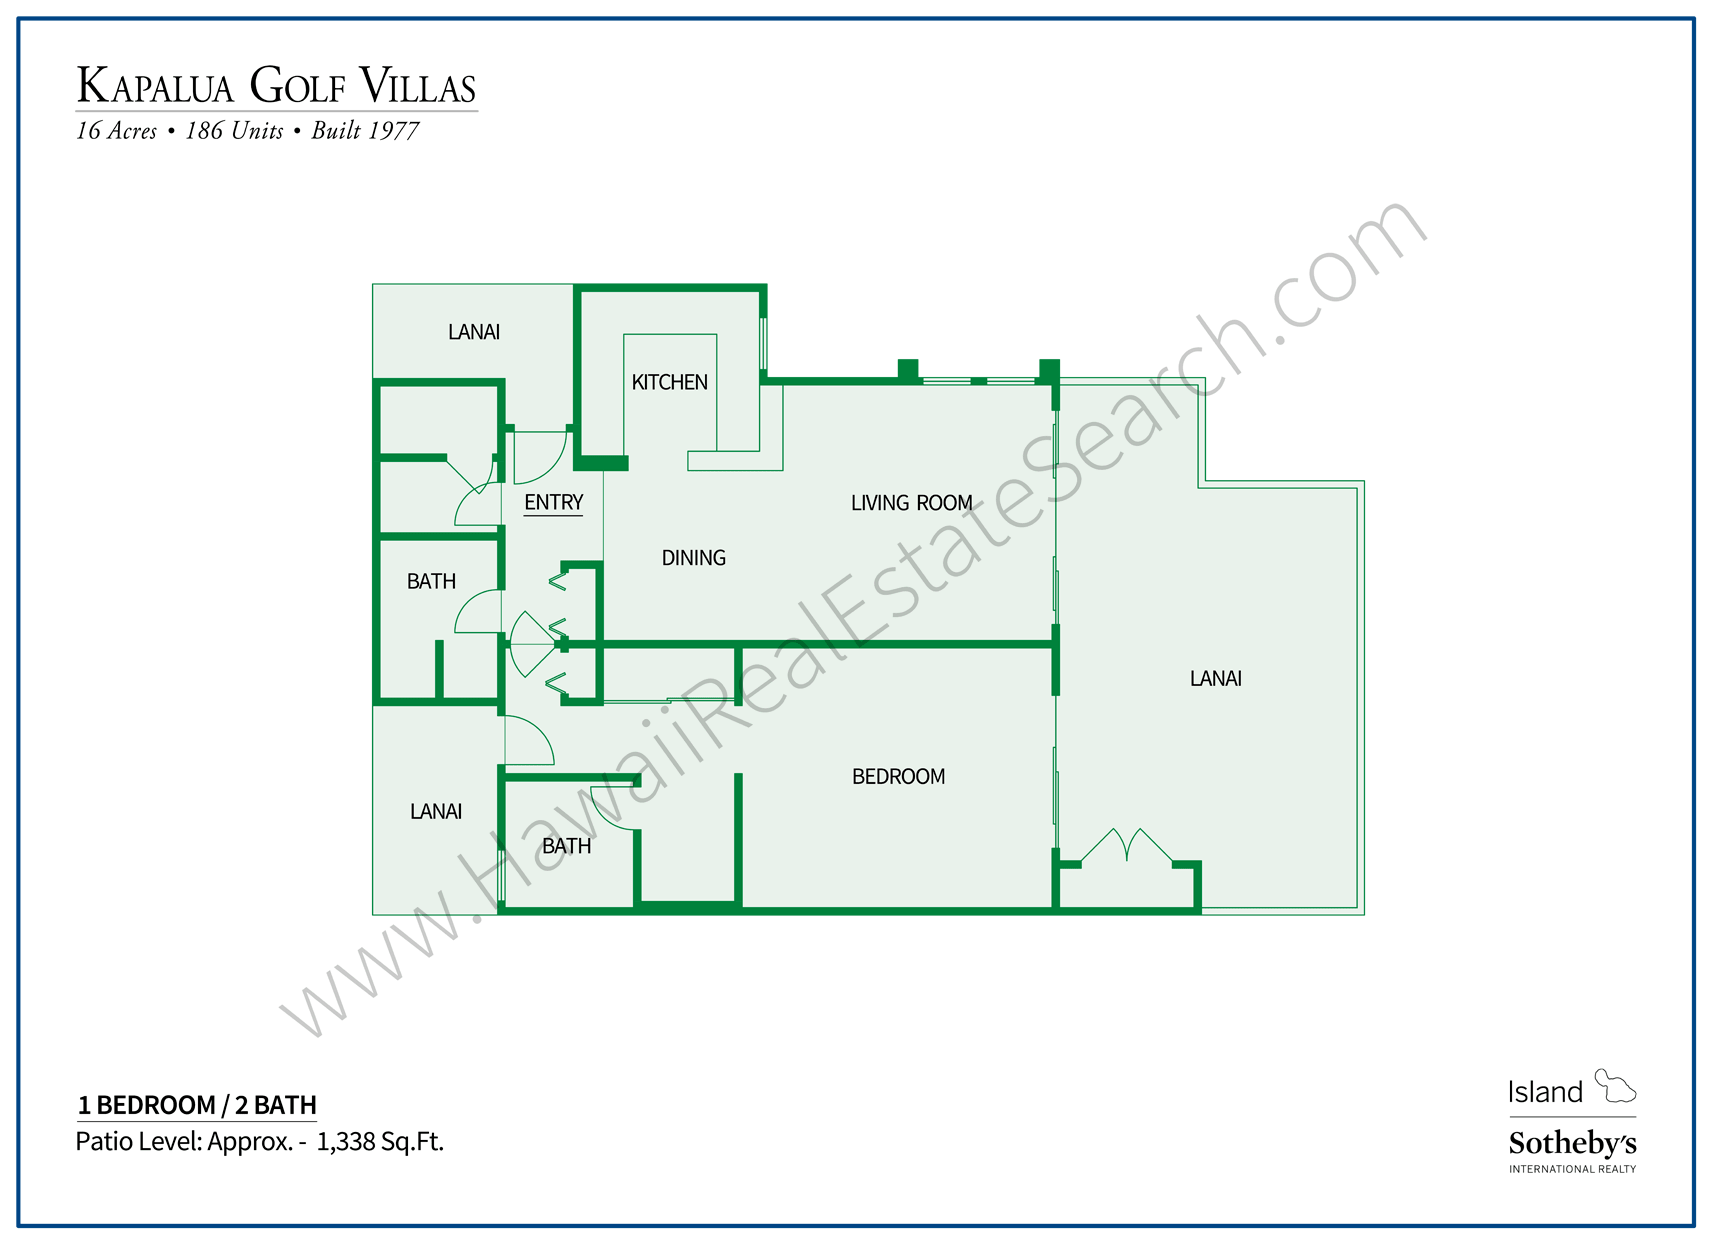 Kapalua Golf Villas Floor Plan 3